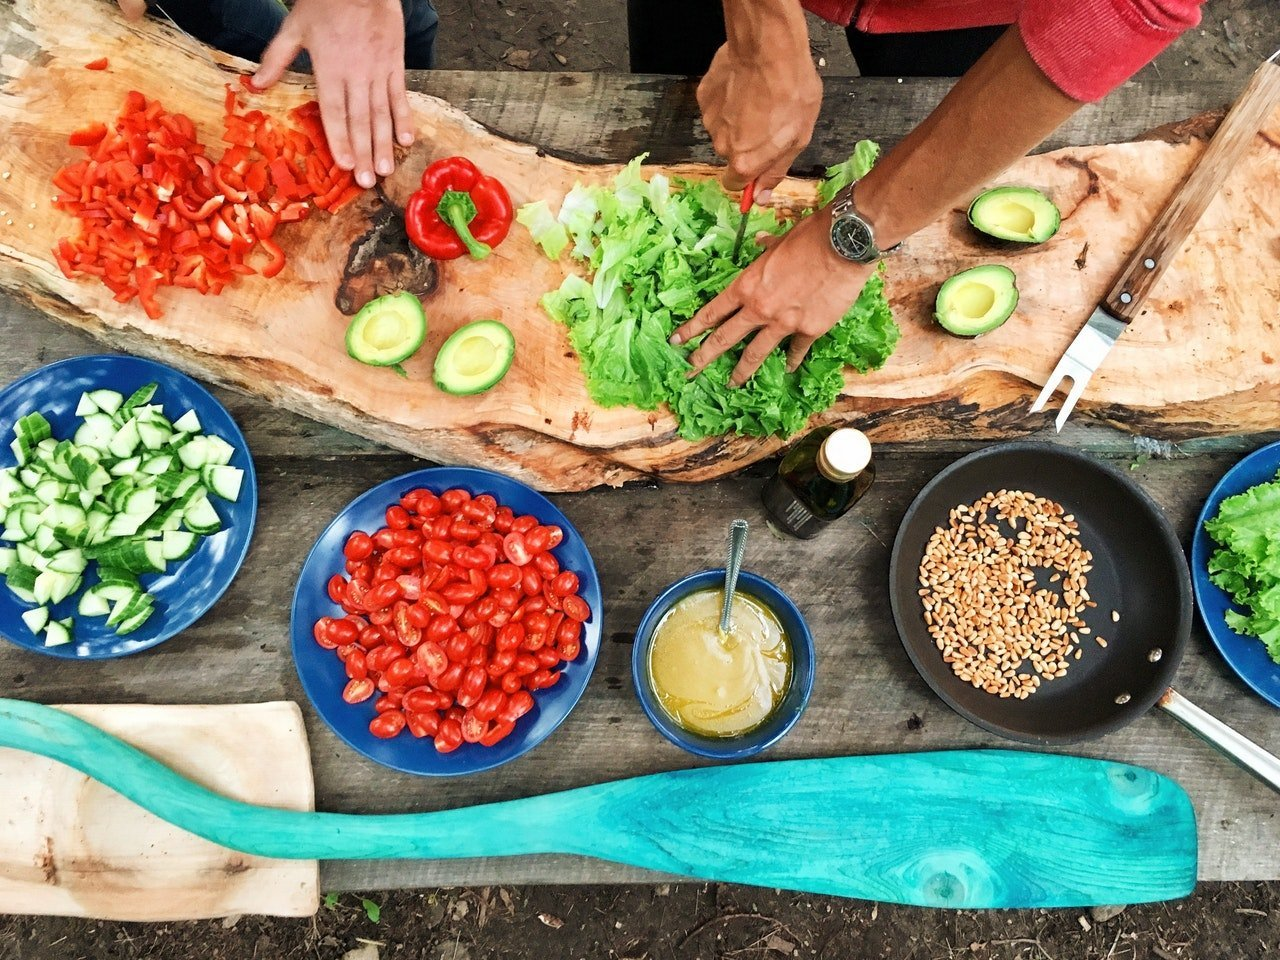 Home gardeners using fresh vegetables to create fresh and lean meals.